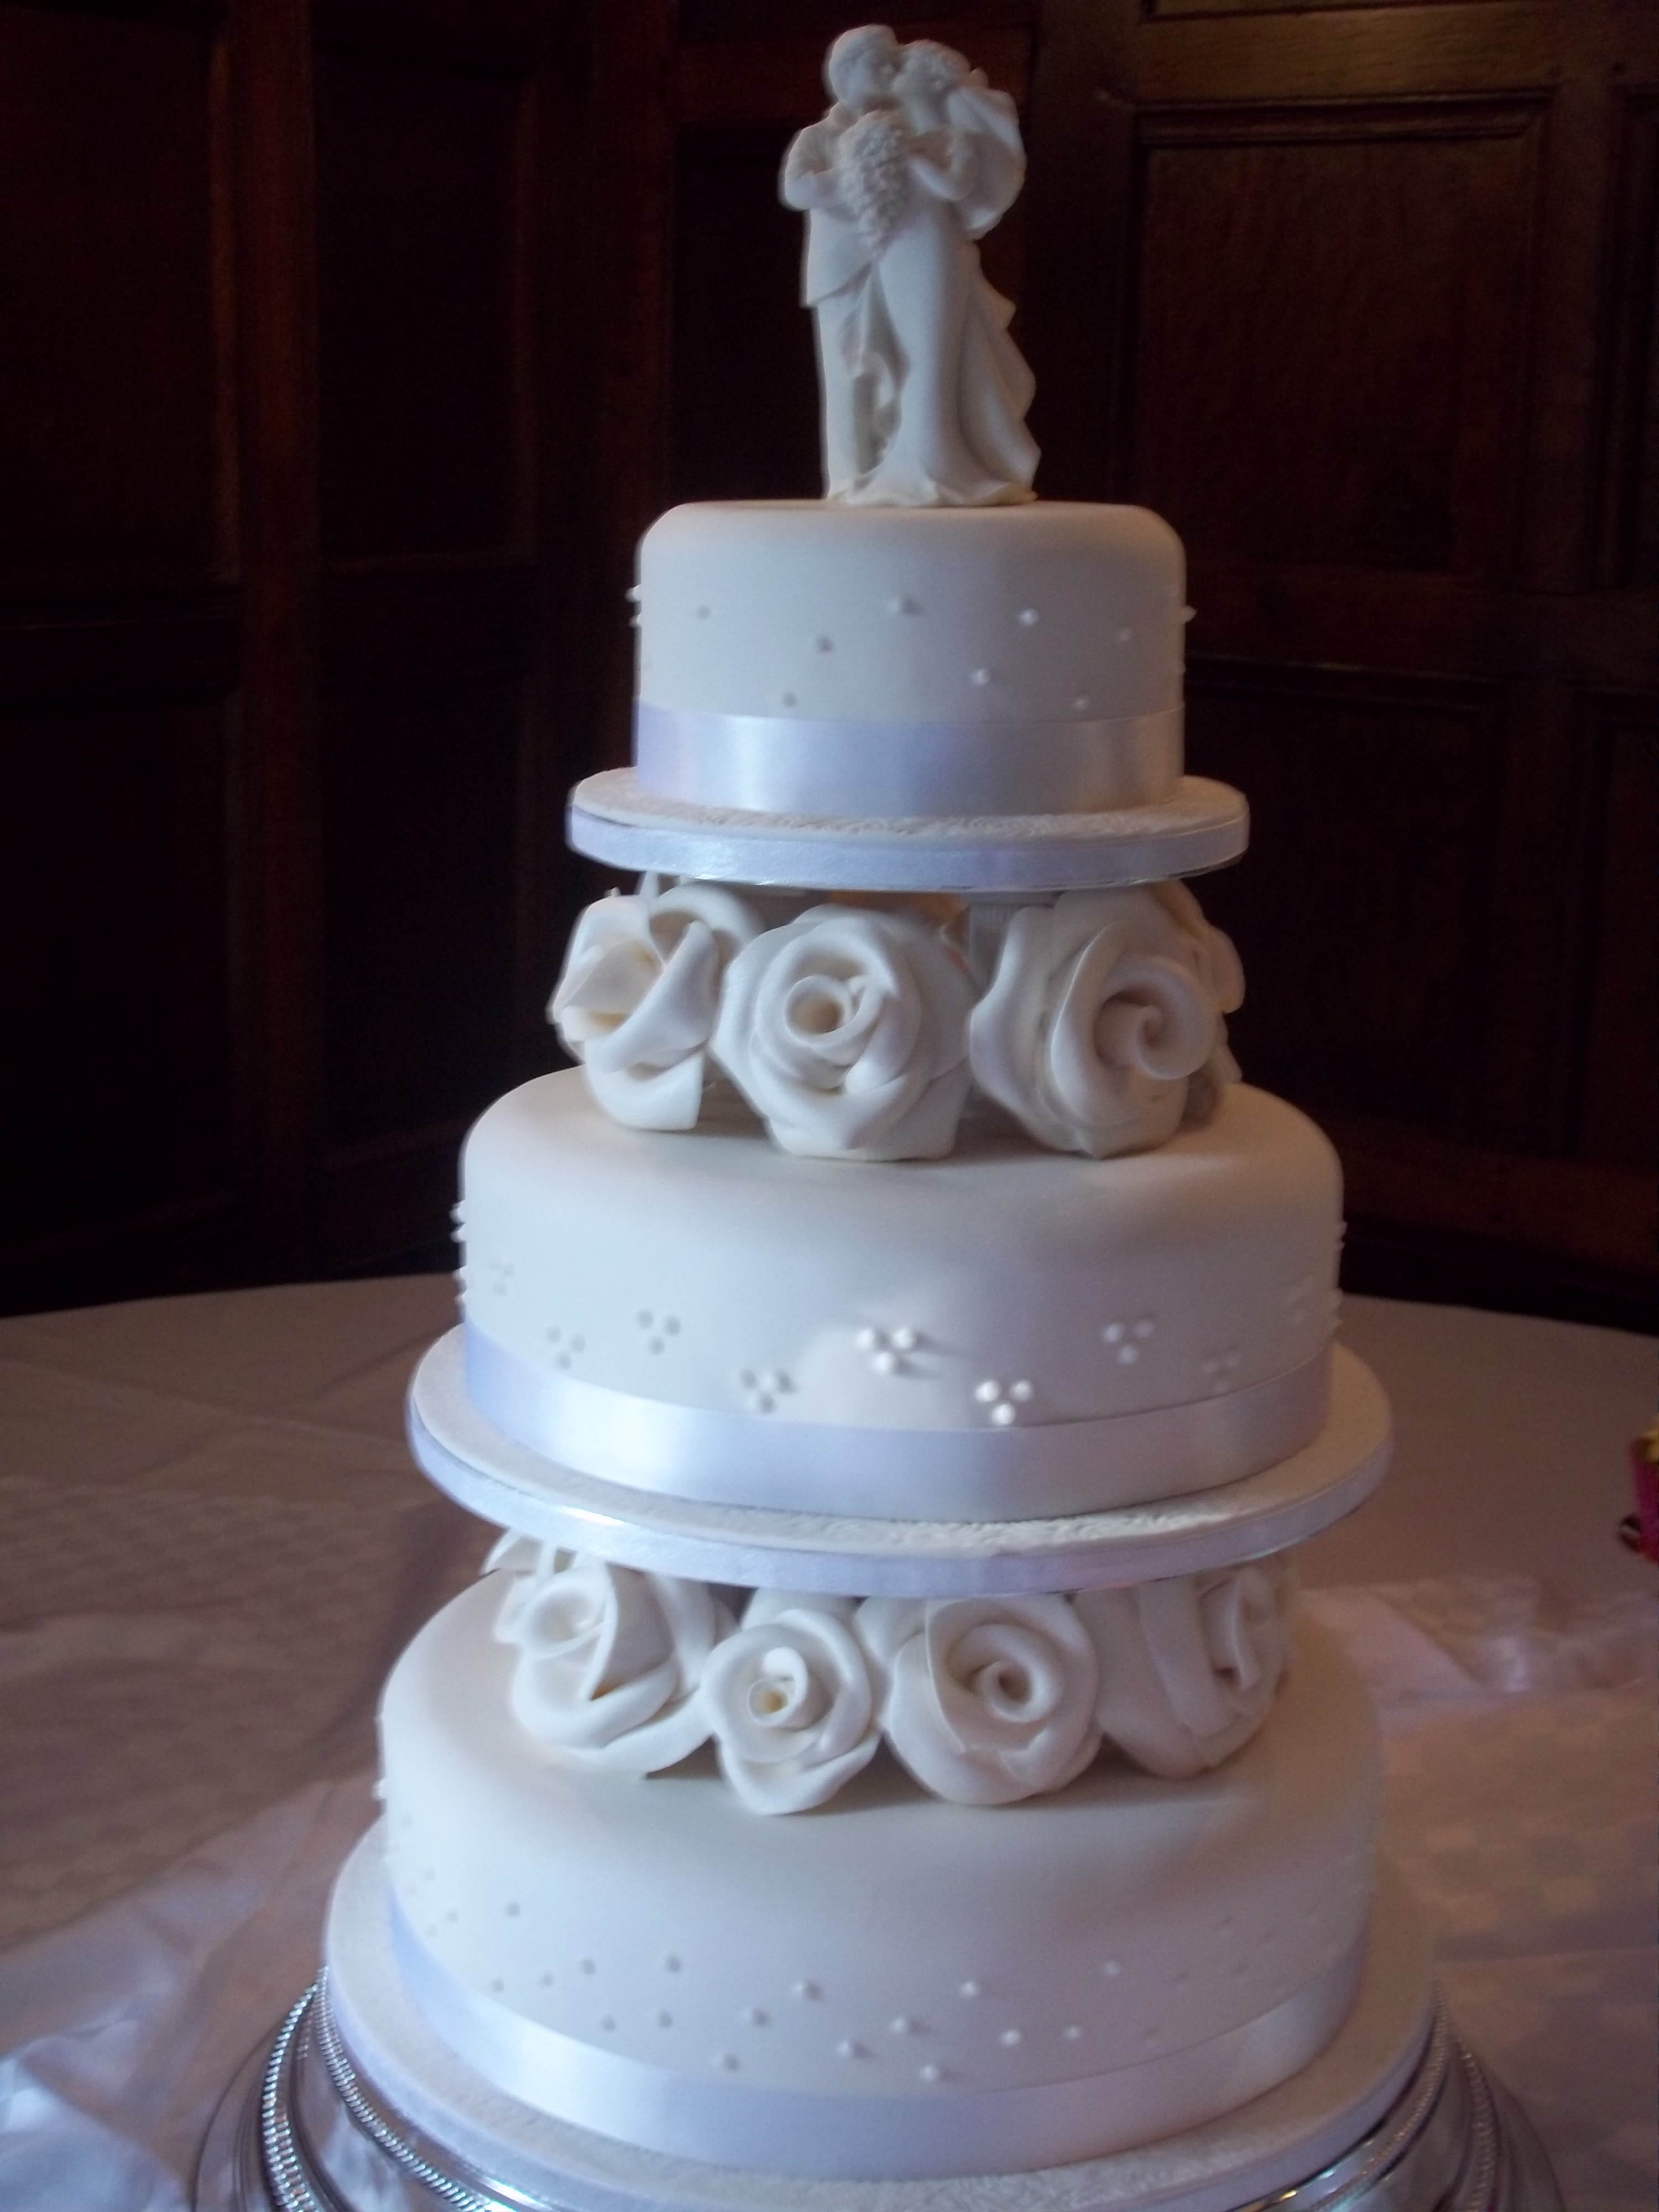 Traditional separated three tier with pillars and roses